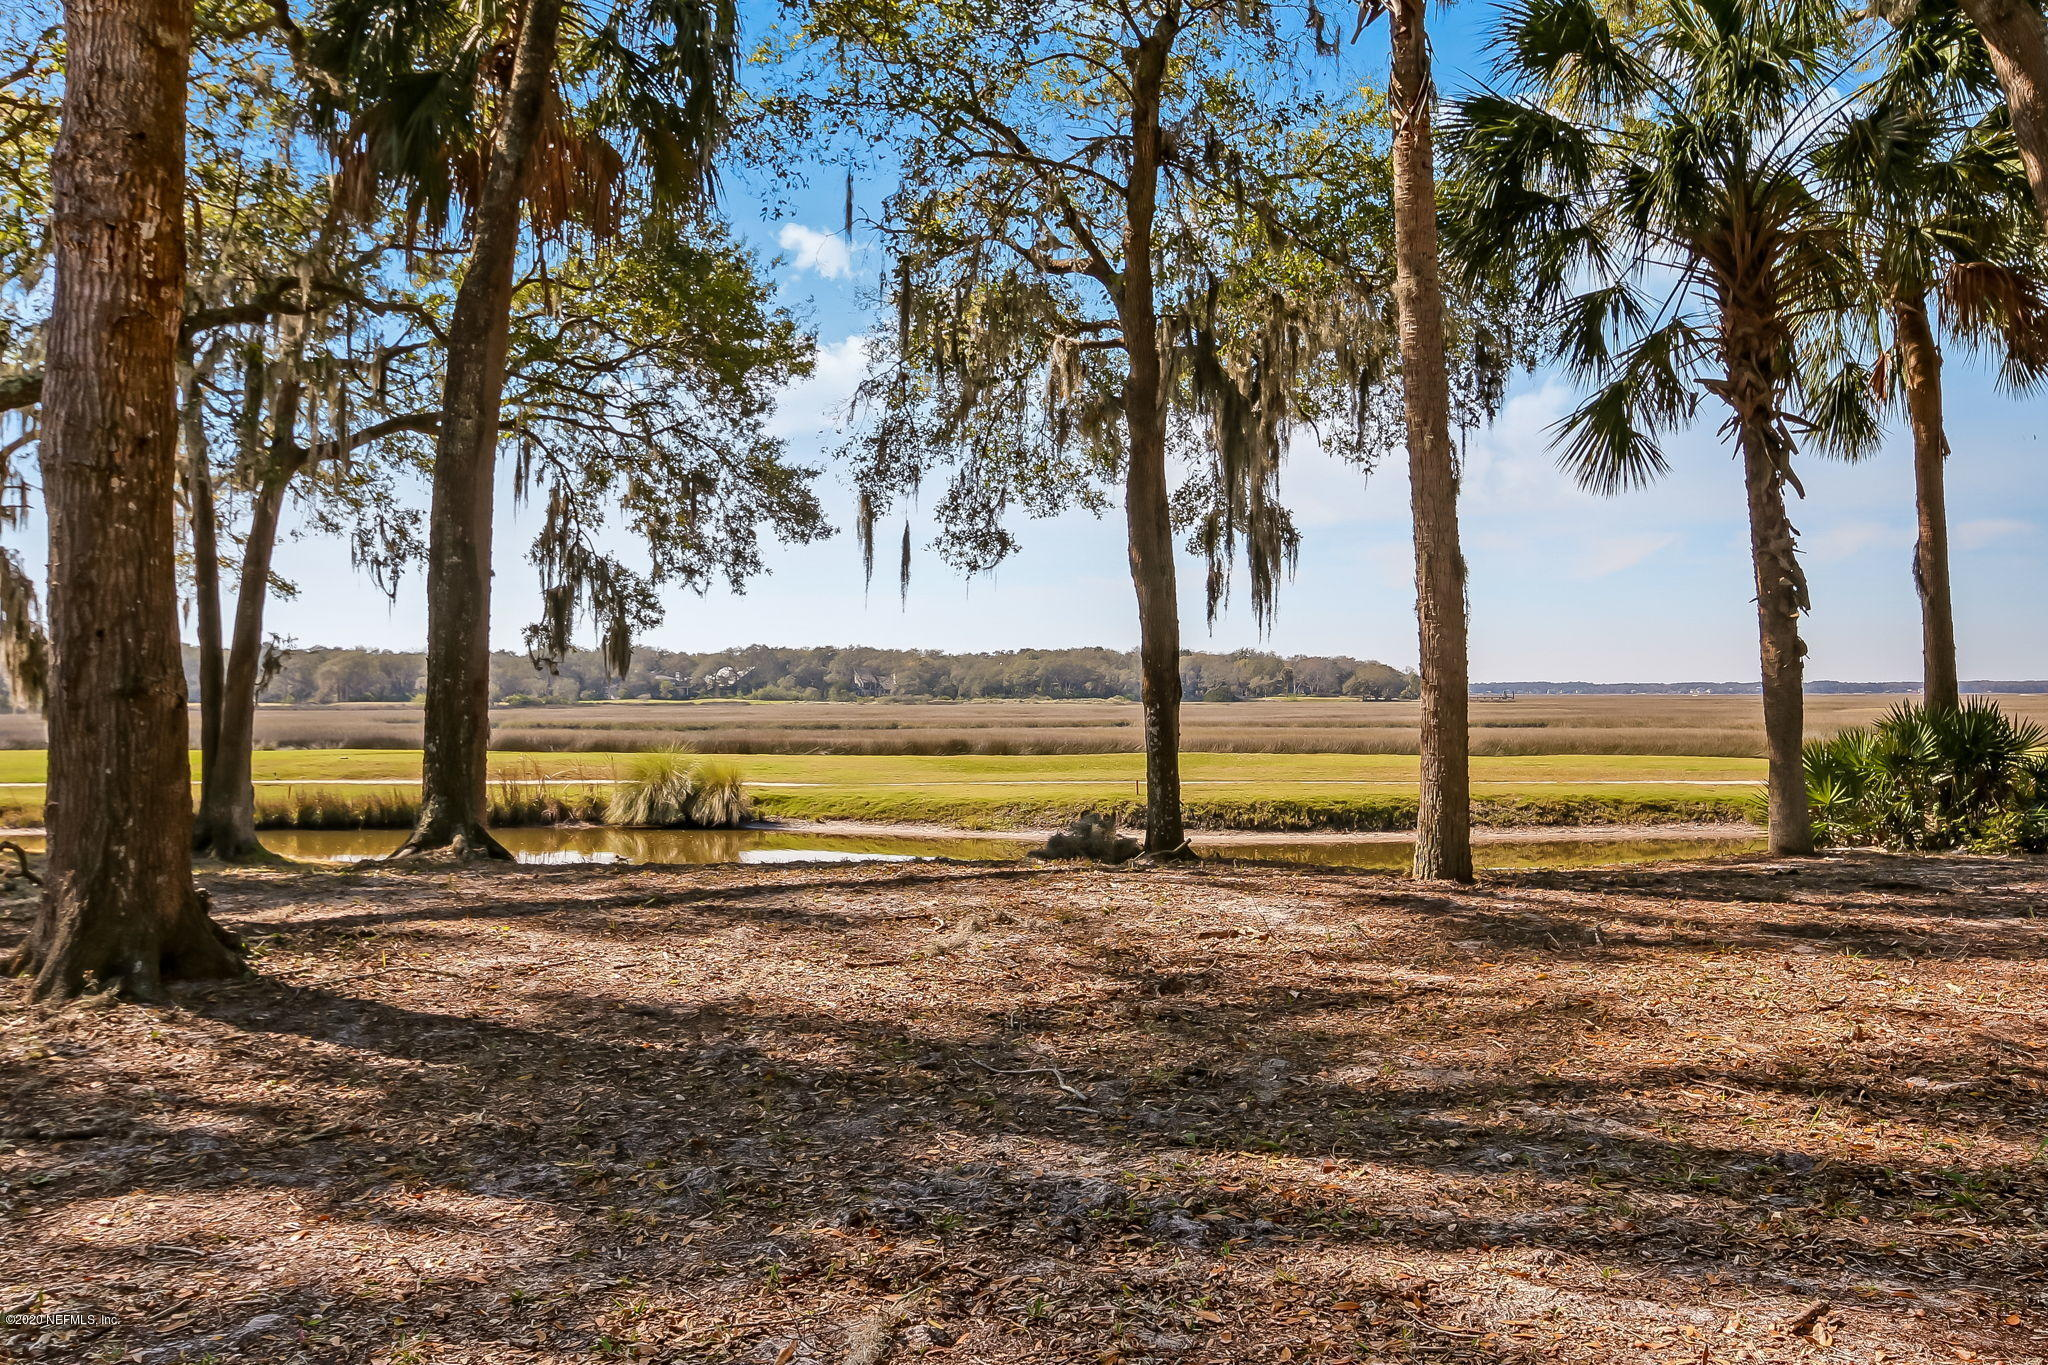 3051 SEA MARSH, FERNANDINA BEACH, FLORIDA 32034, 2 Bedrooms Bedrooms, ,2 BathroomsBathrooms,Residential,For sale,SEA MARSH,1043808